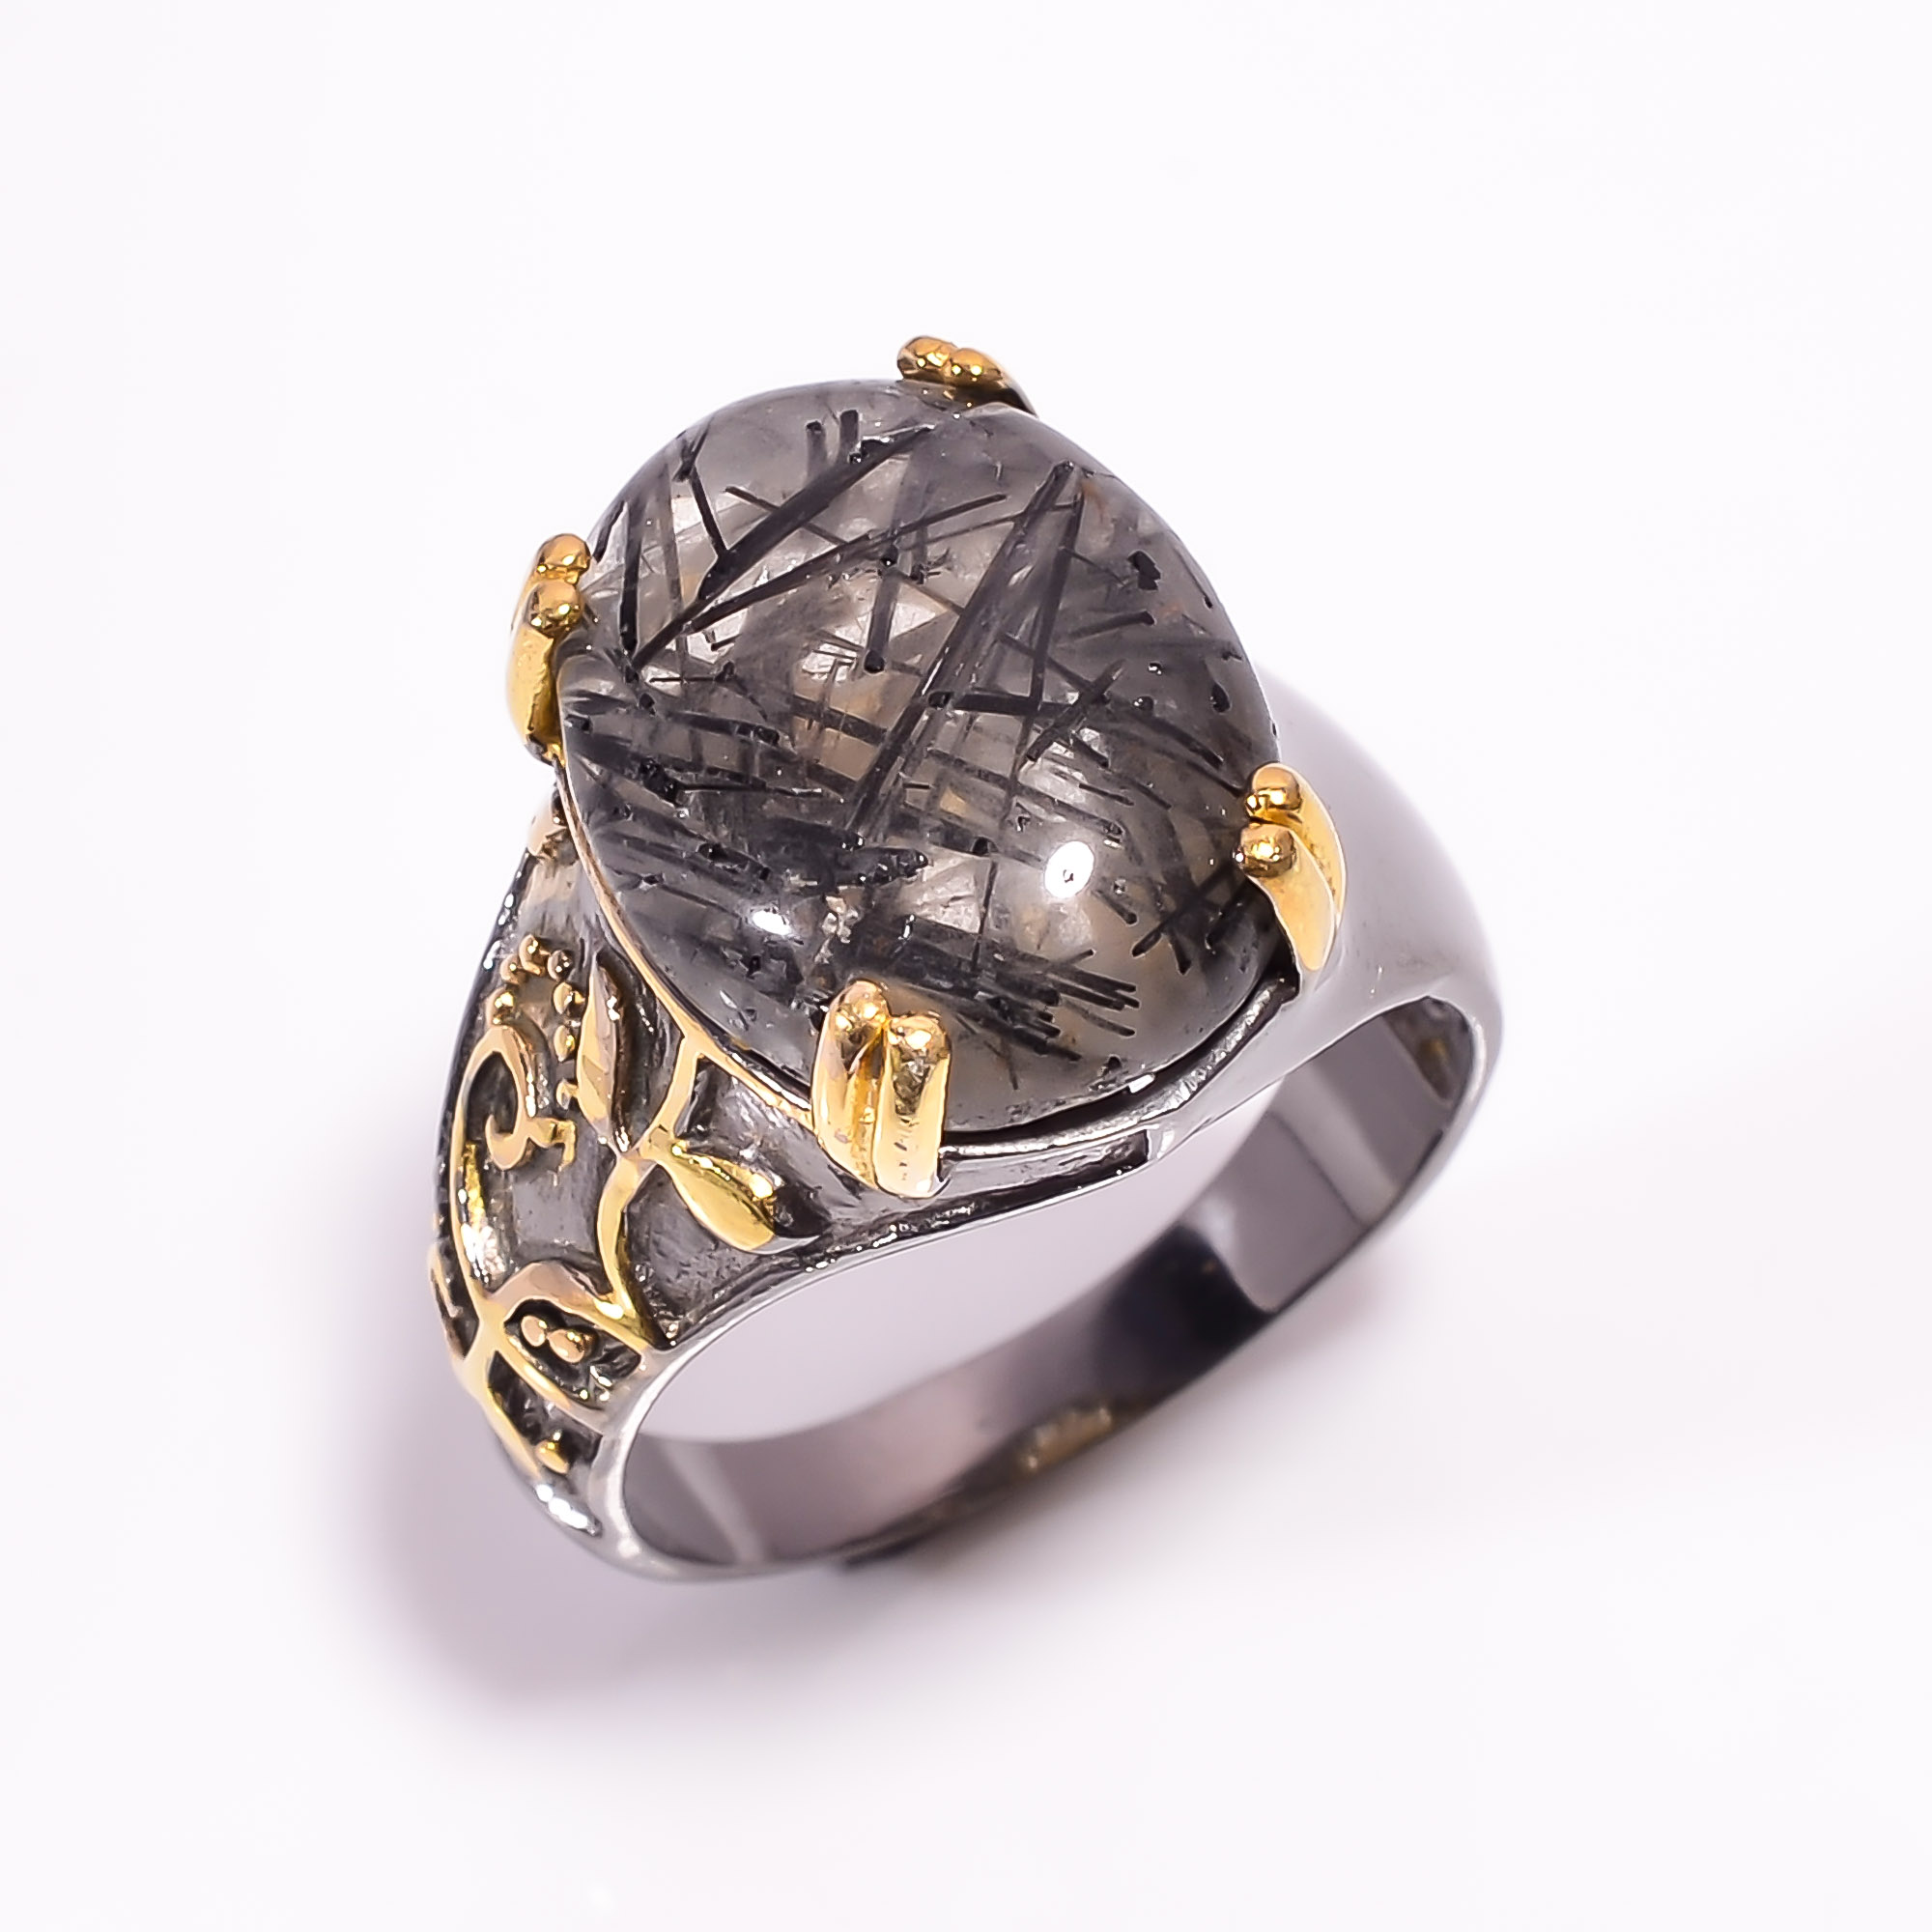 925 Sterling Silver Gold Plated & Black Rhodium Two Tone Rutile Ring Size US 8.25